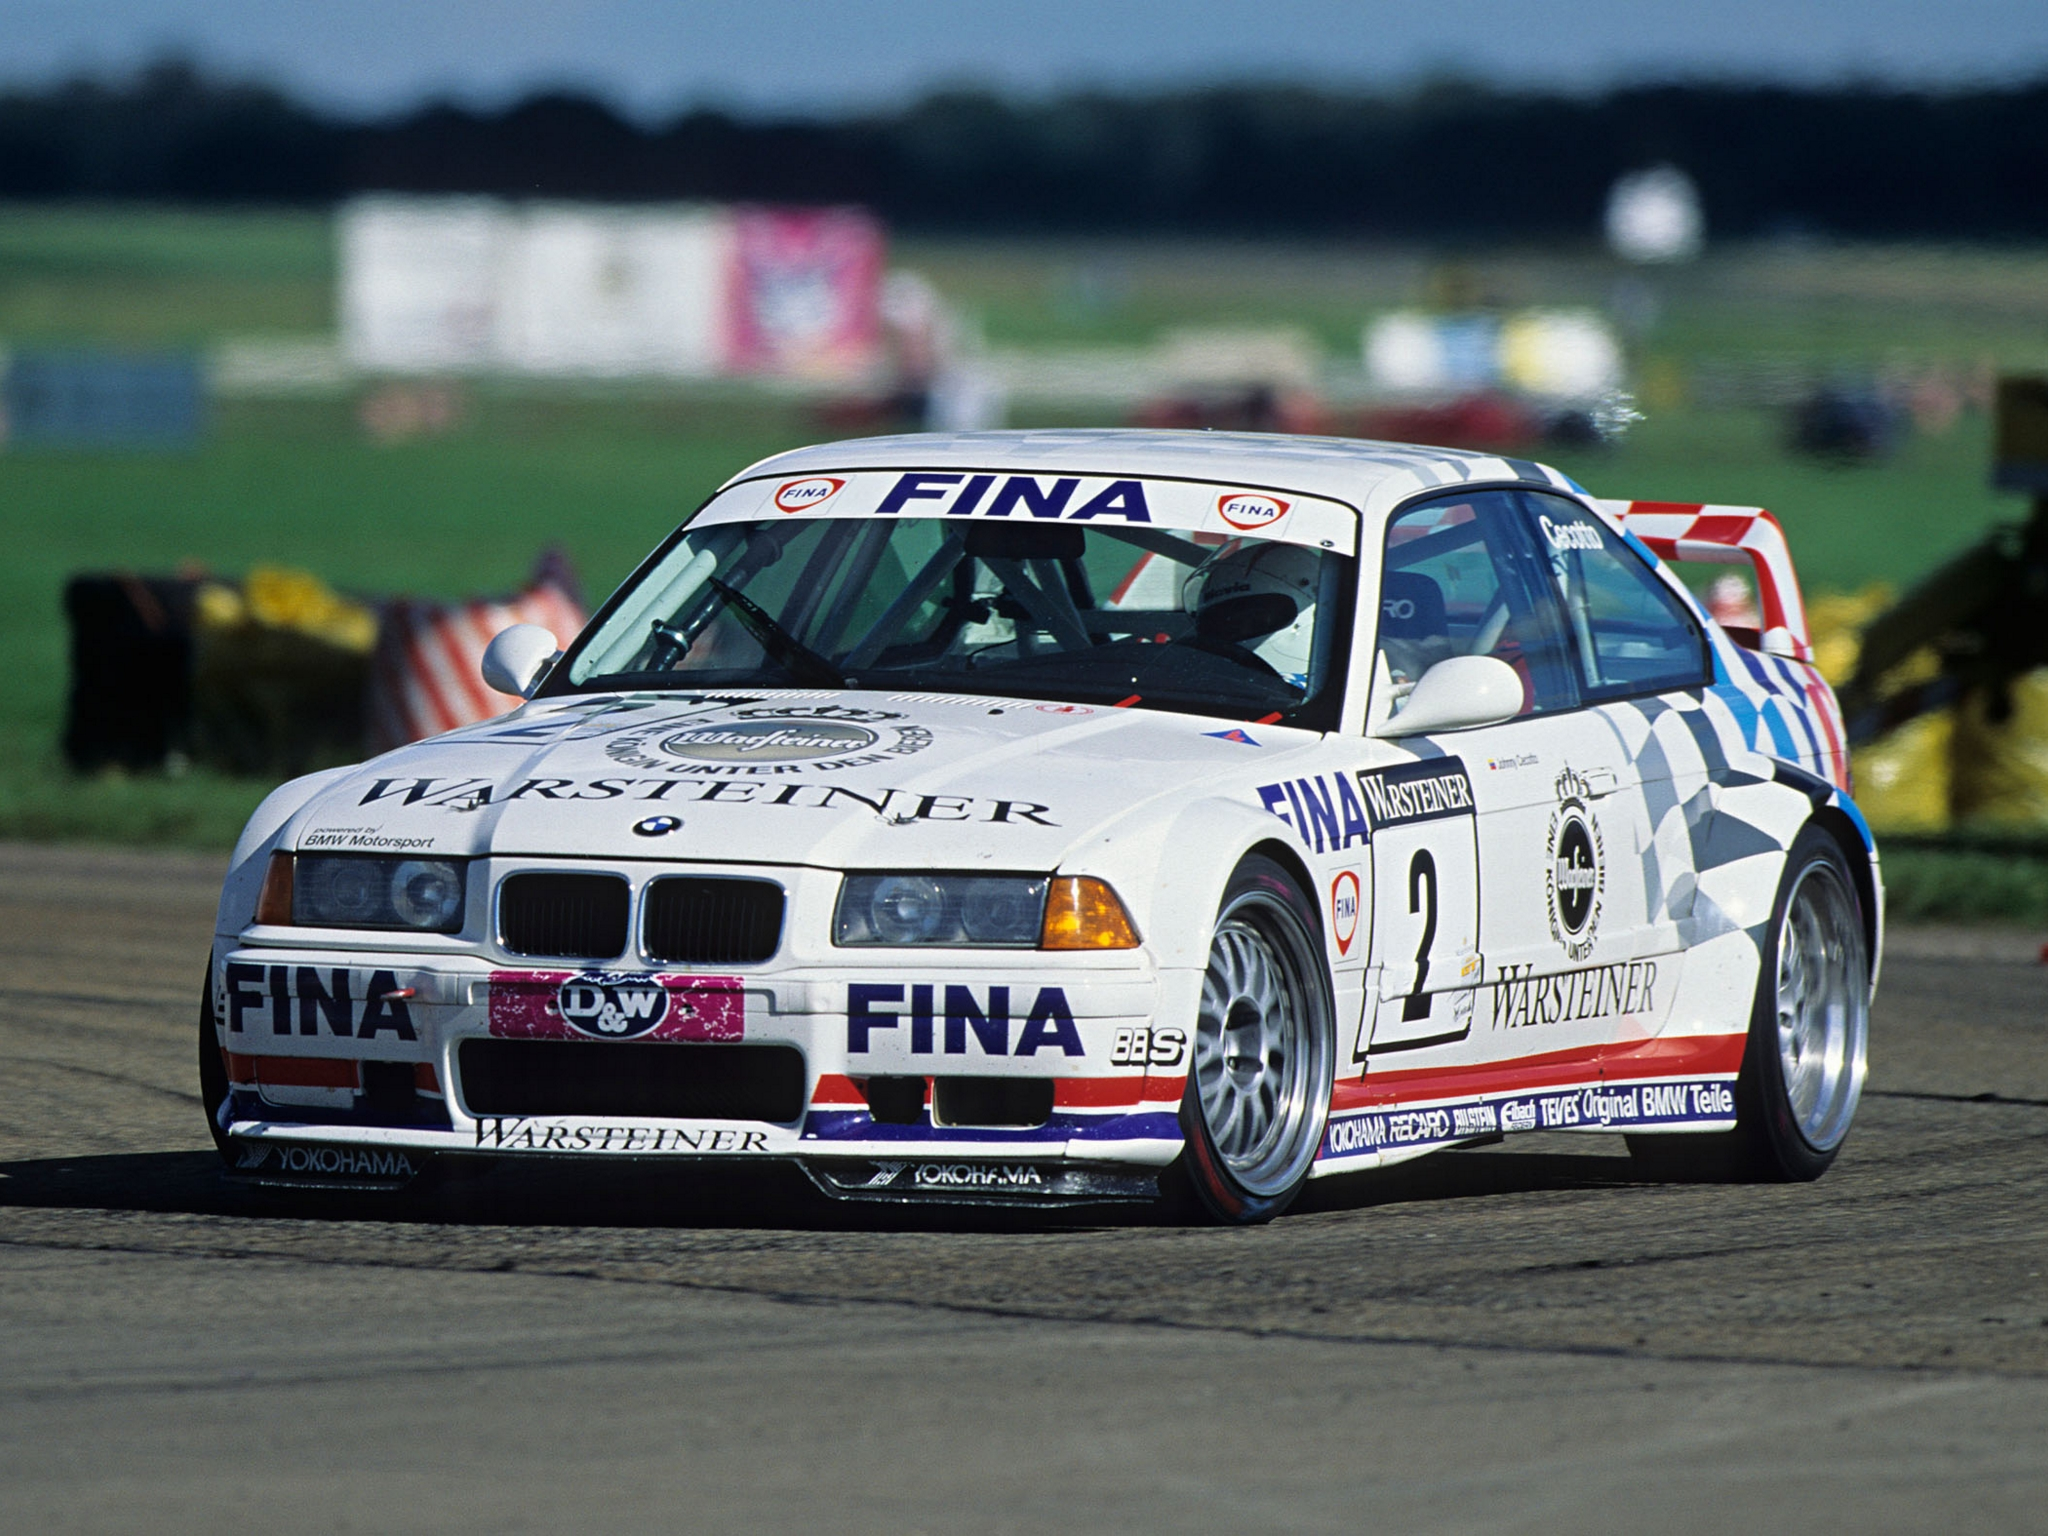 1995 Bmw M3 Gtr E36 Race Racing M 3 G Wallpaper